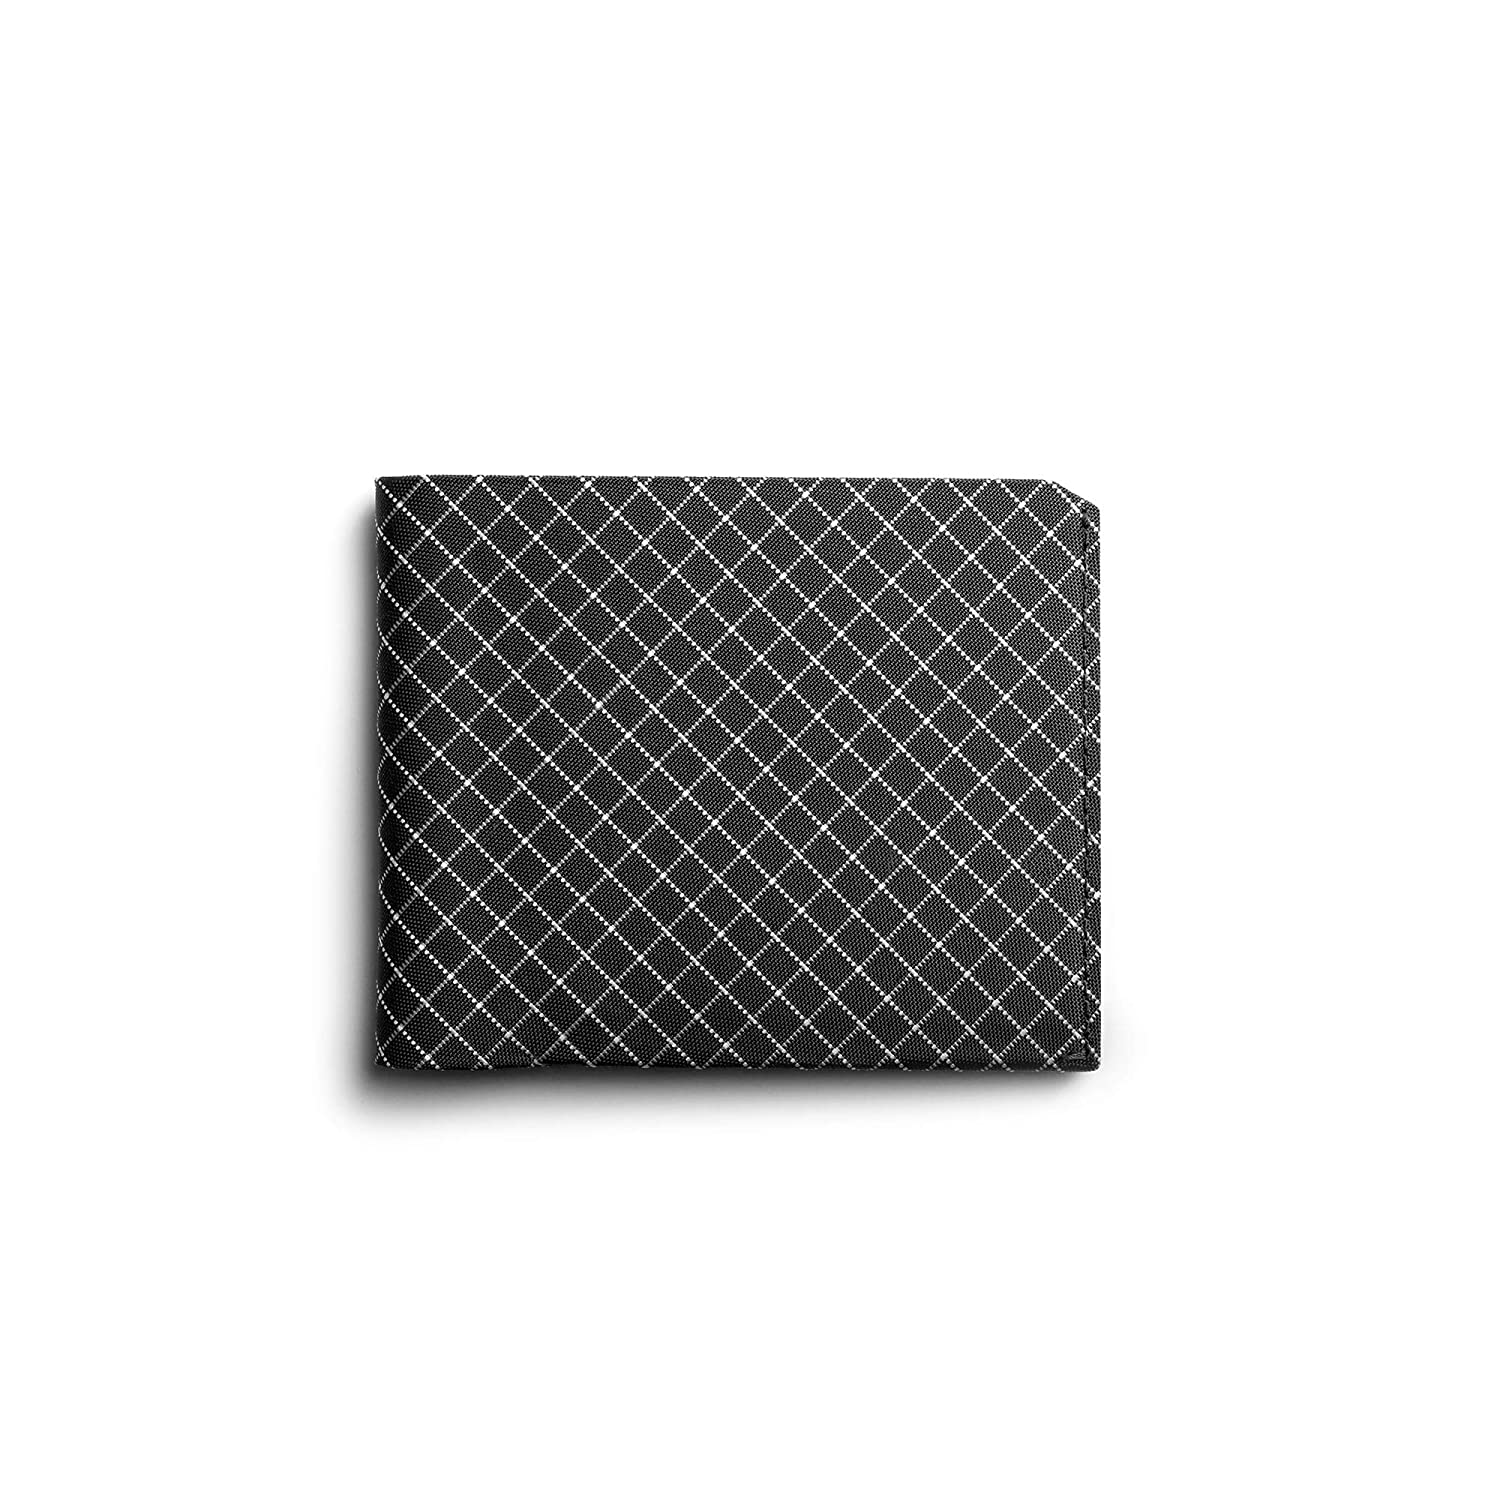 Amazon.com: Pioneer - Cartera plegable, S: Clothing